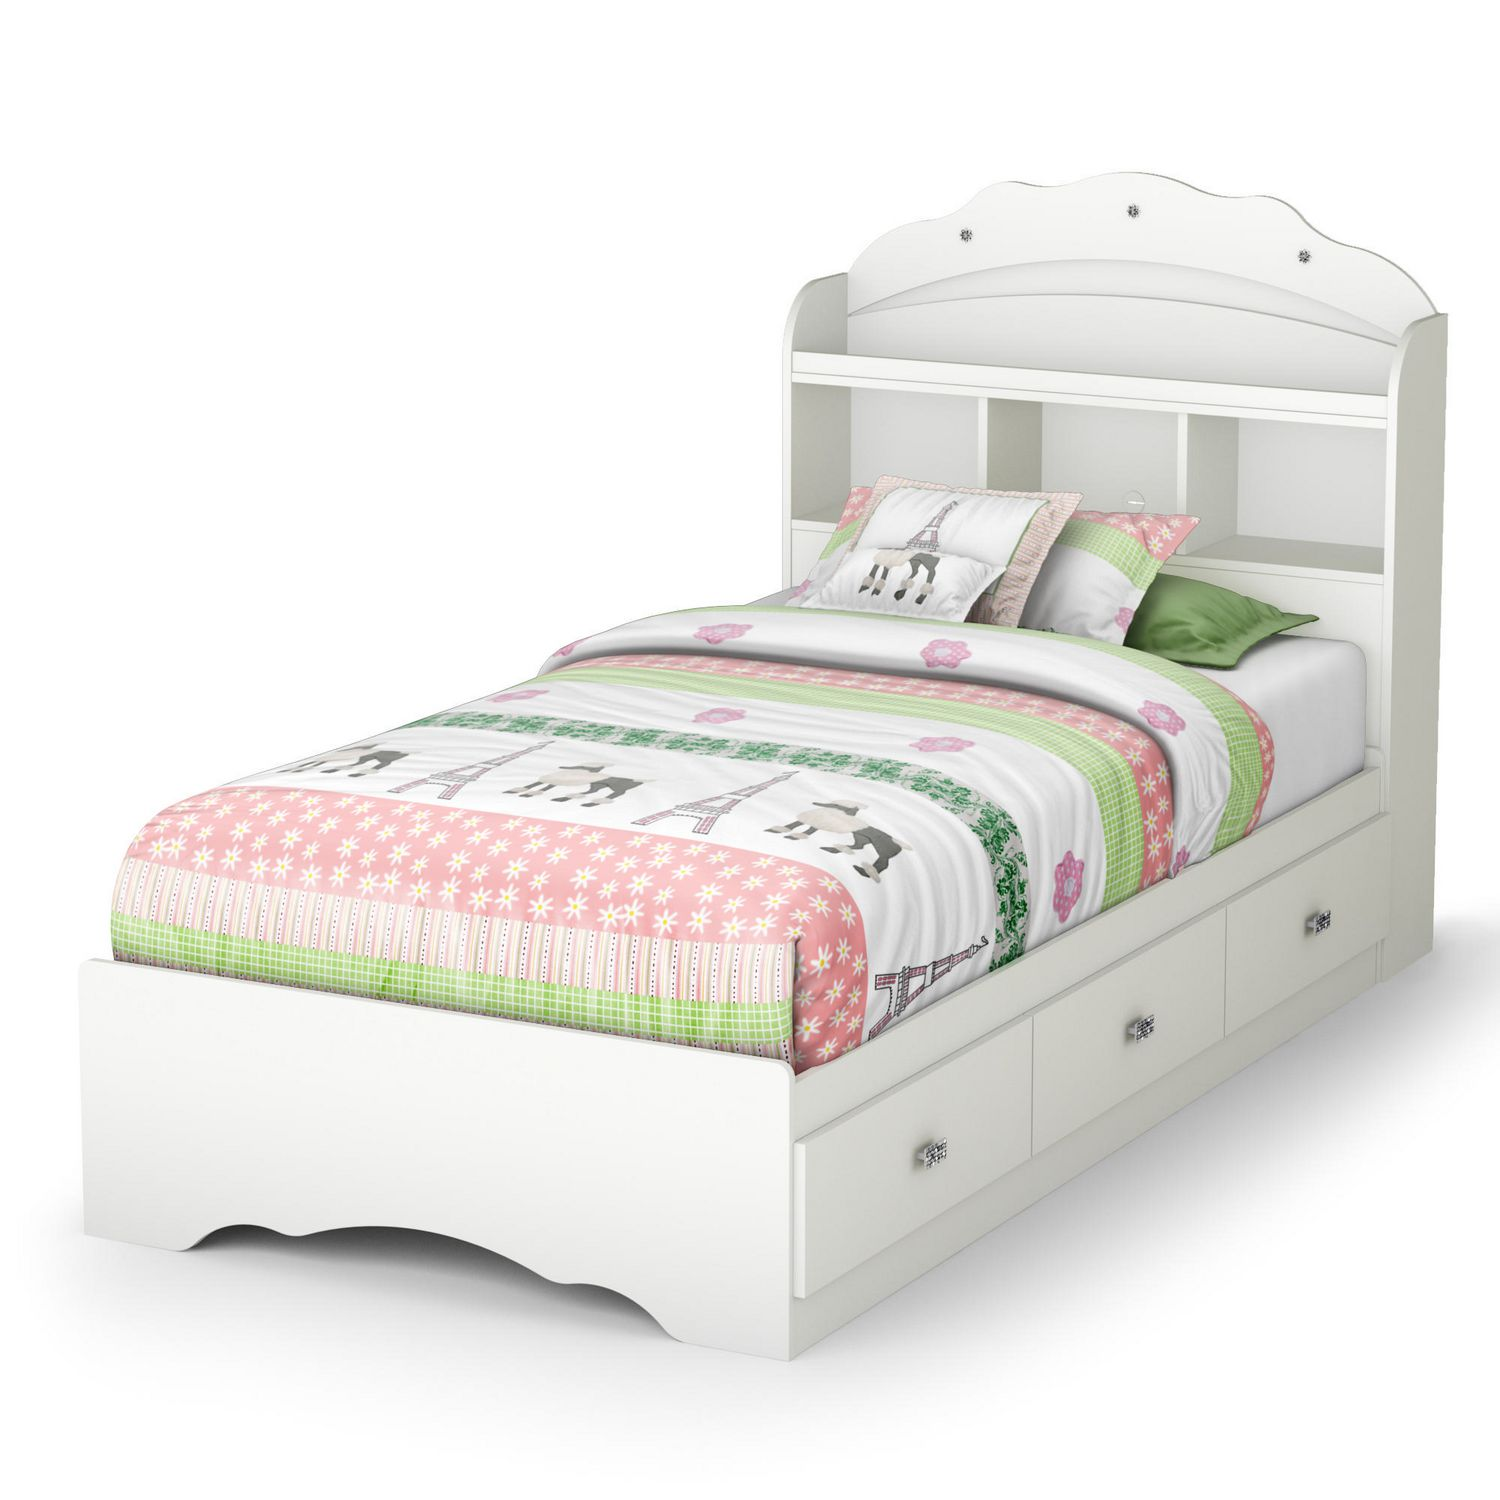 South Shore Tiara Twin Storage Bed With Drawers And Bookcase